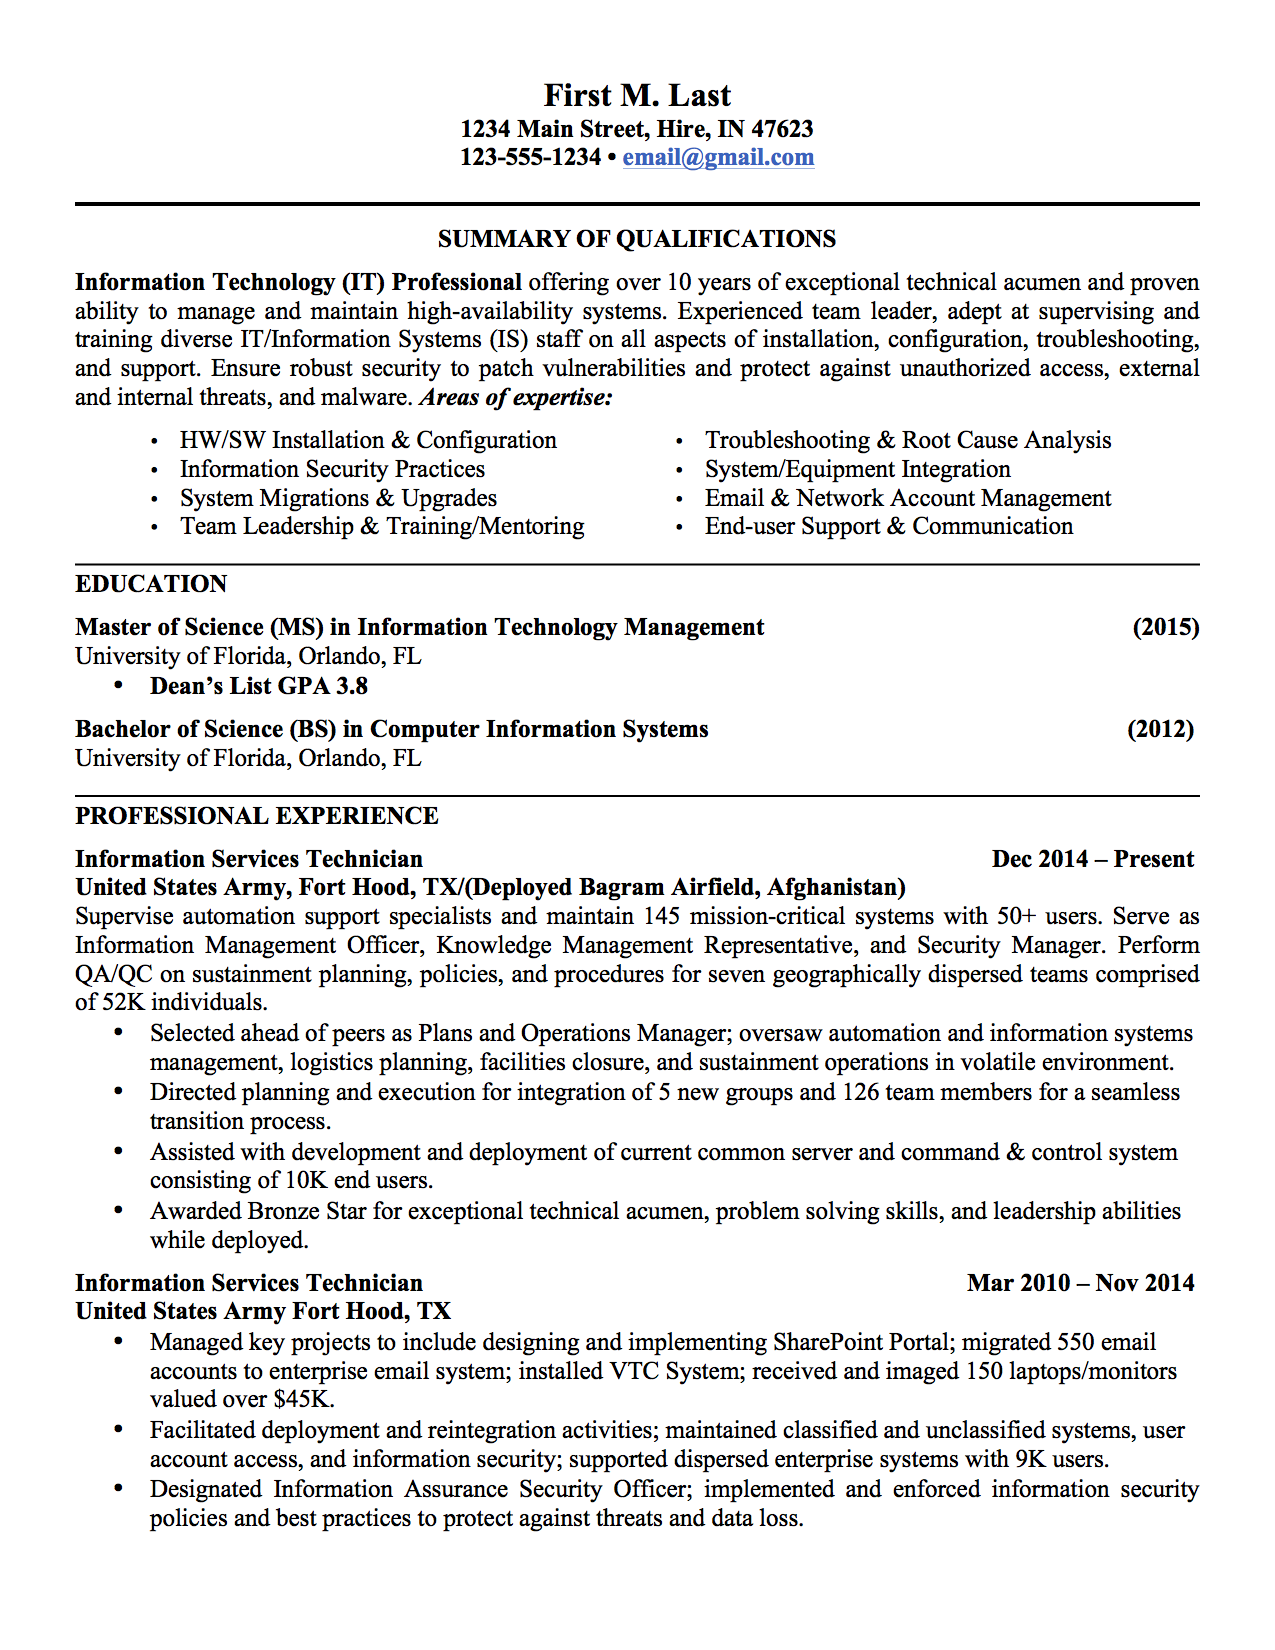 6 sample military to civilian resumes. Resume Example. Resume CV Cover Letter